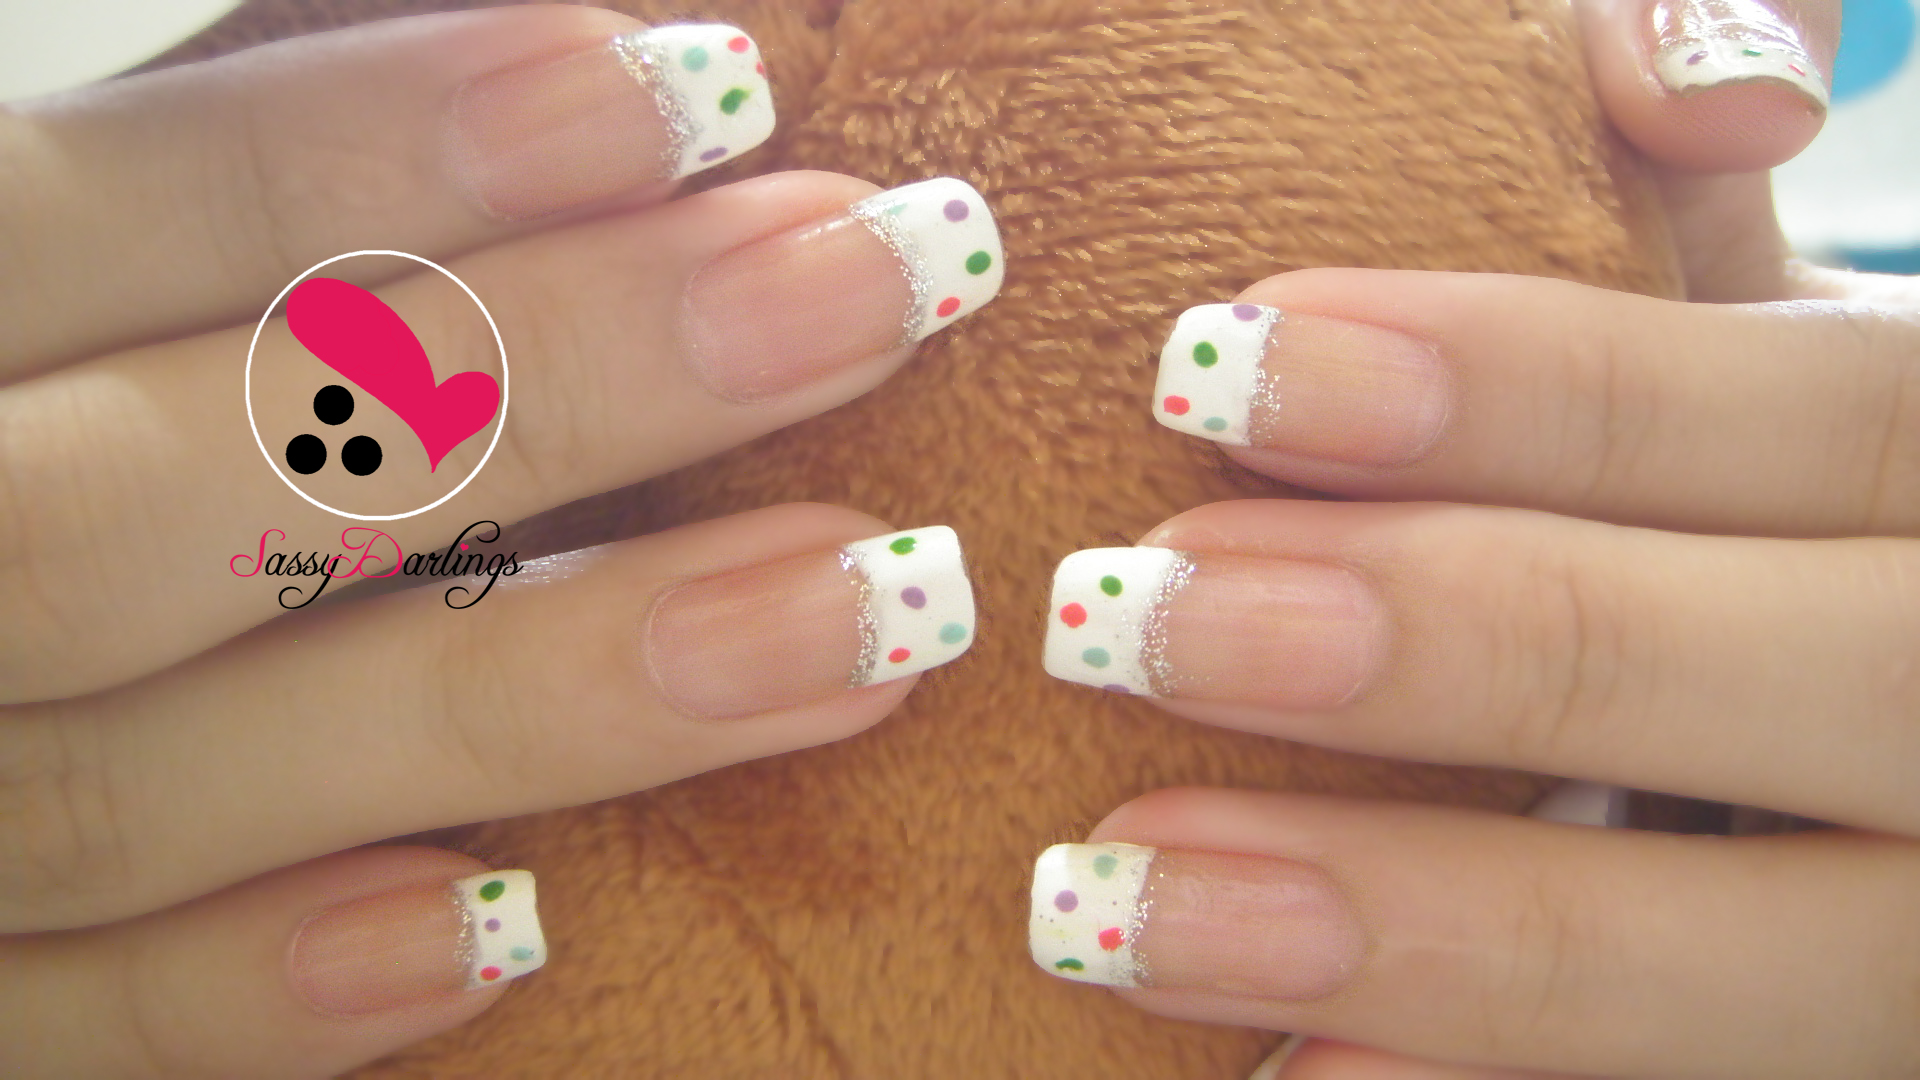 Nail art love huge passion for nail art food kpop and wonder girls lim nail art prinsesfo Image collections